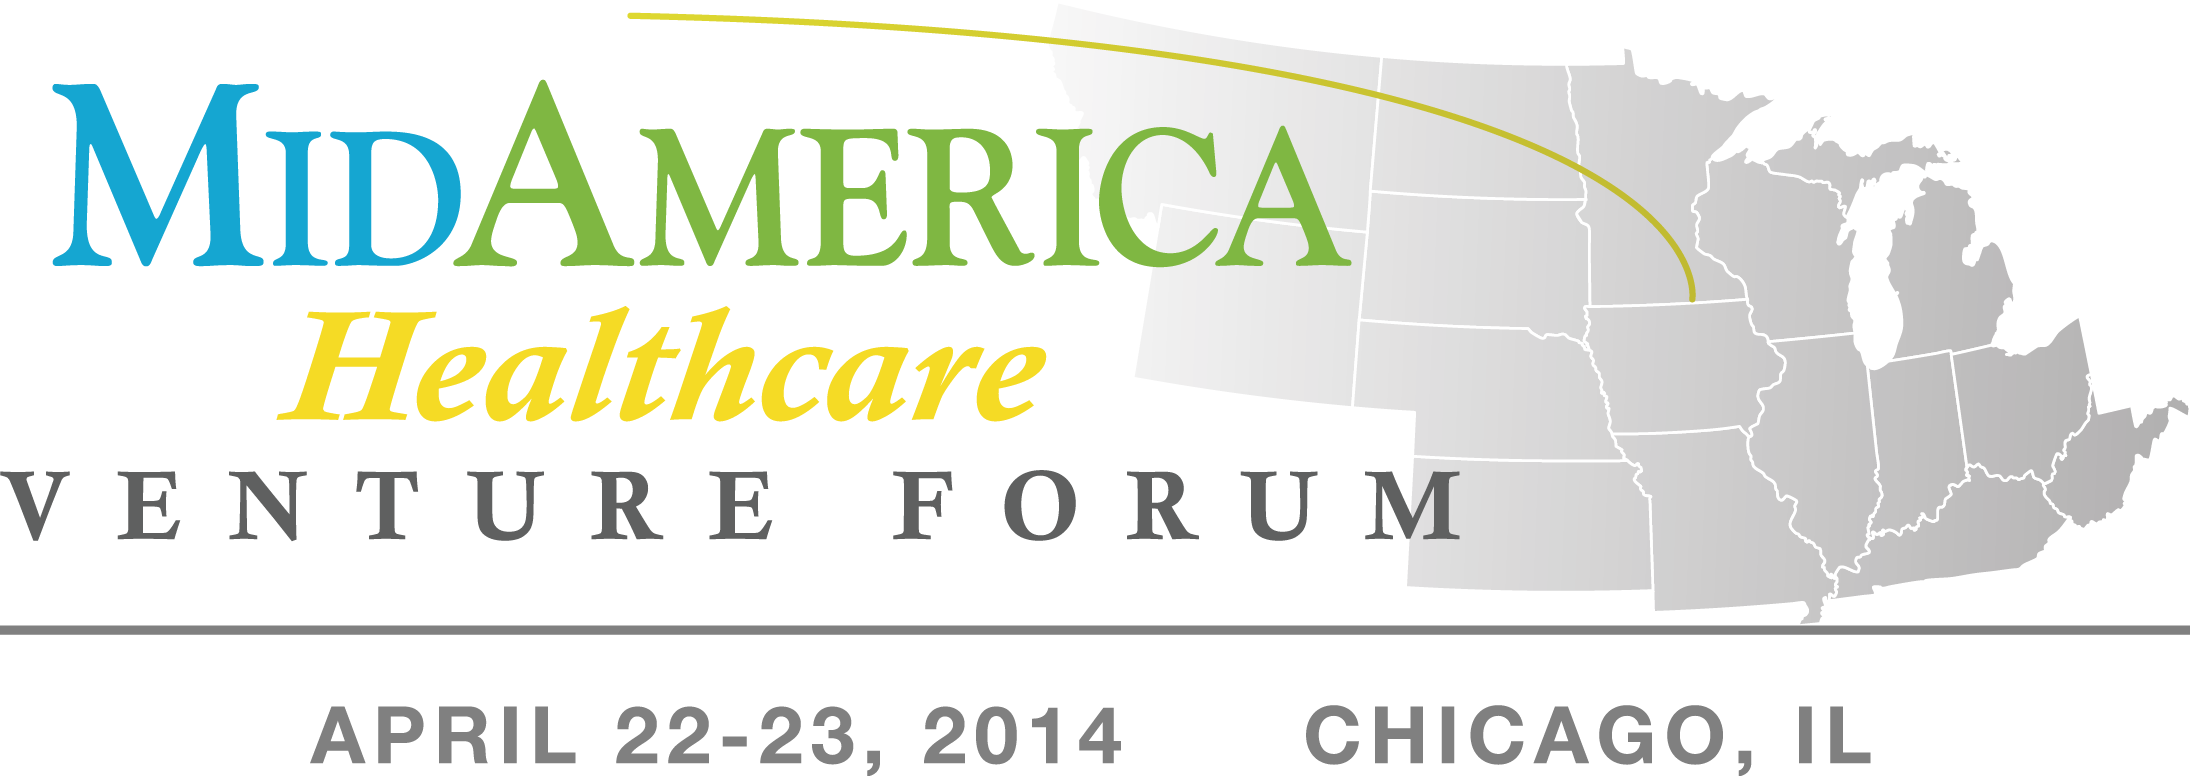 MidAmerica Healthcare Venture Forum speaker lineup features innovative healthcare leaders, investors and entrepreneurs